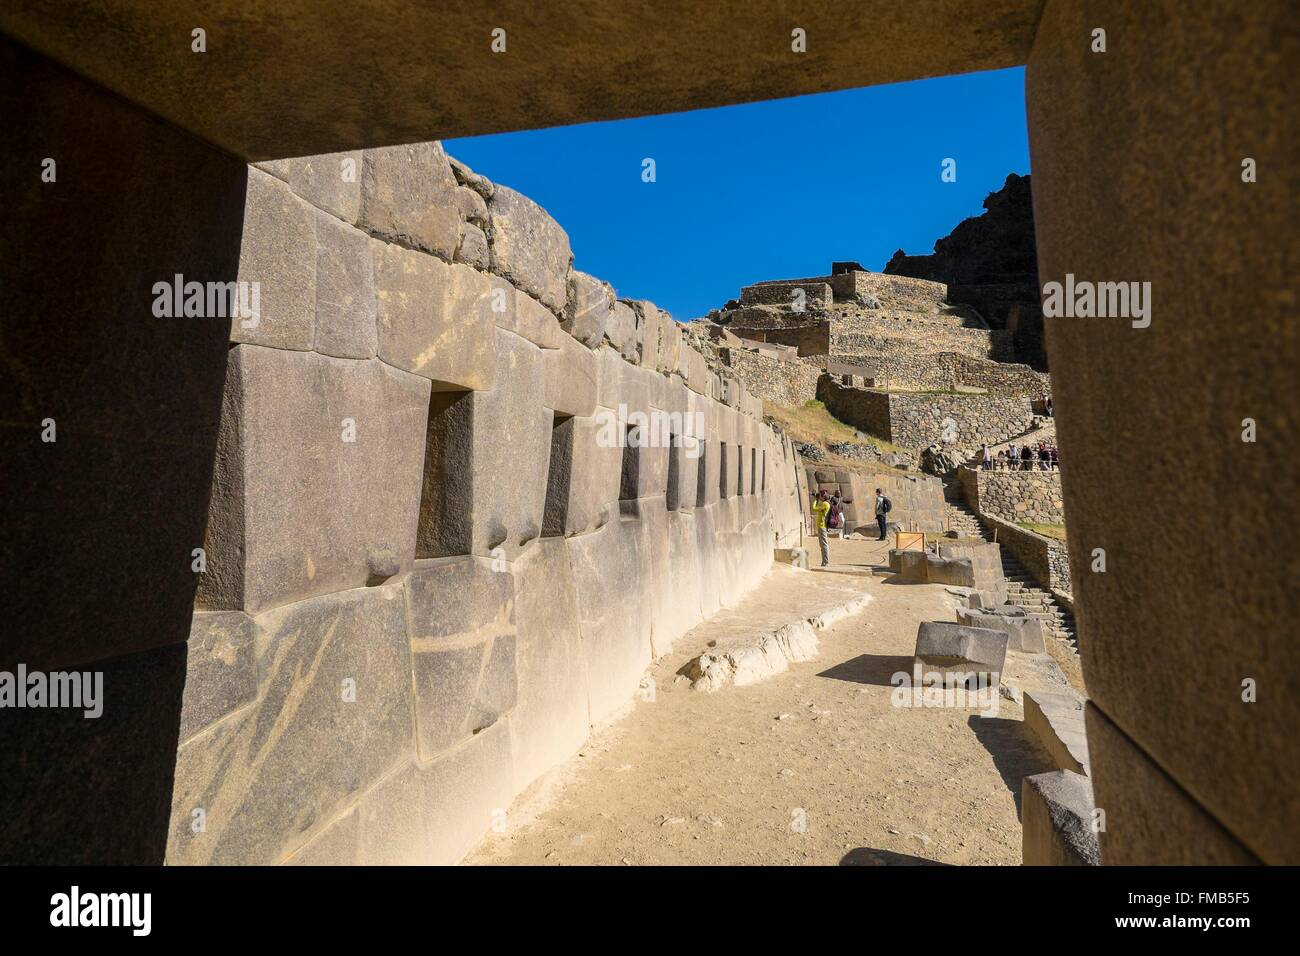 Peru, Cusco Province, Incas Sacred Valley, Ollantaytambo, ruins of the inca fortress, trapezoidal inca gate - Stock Image